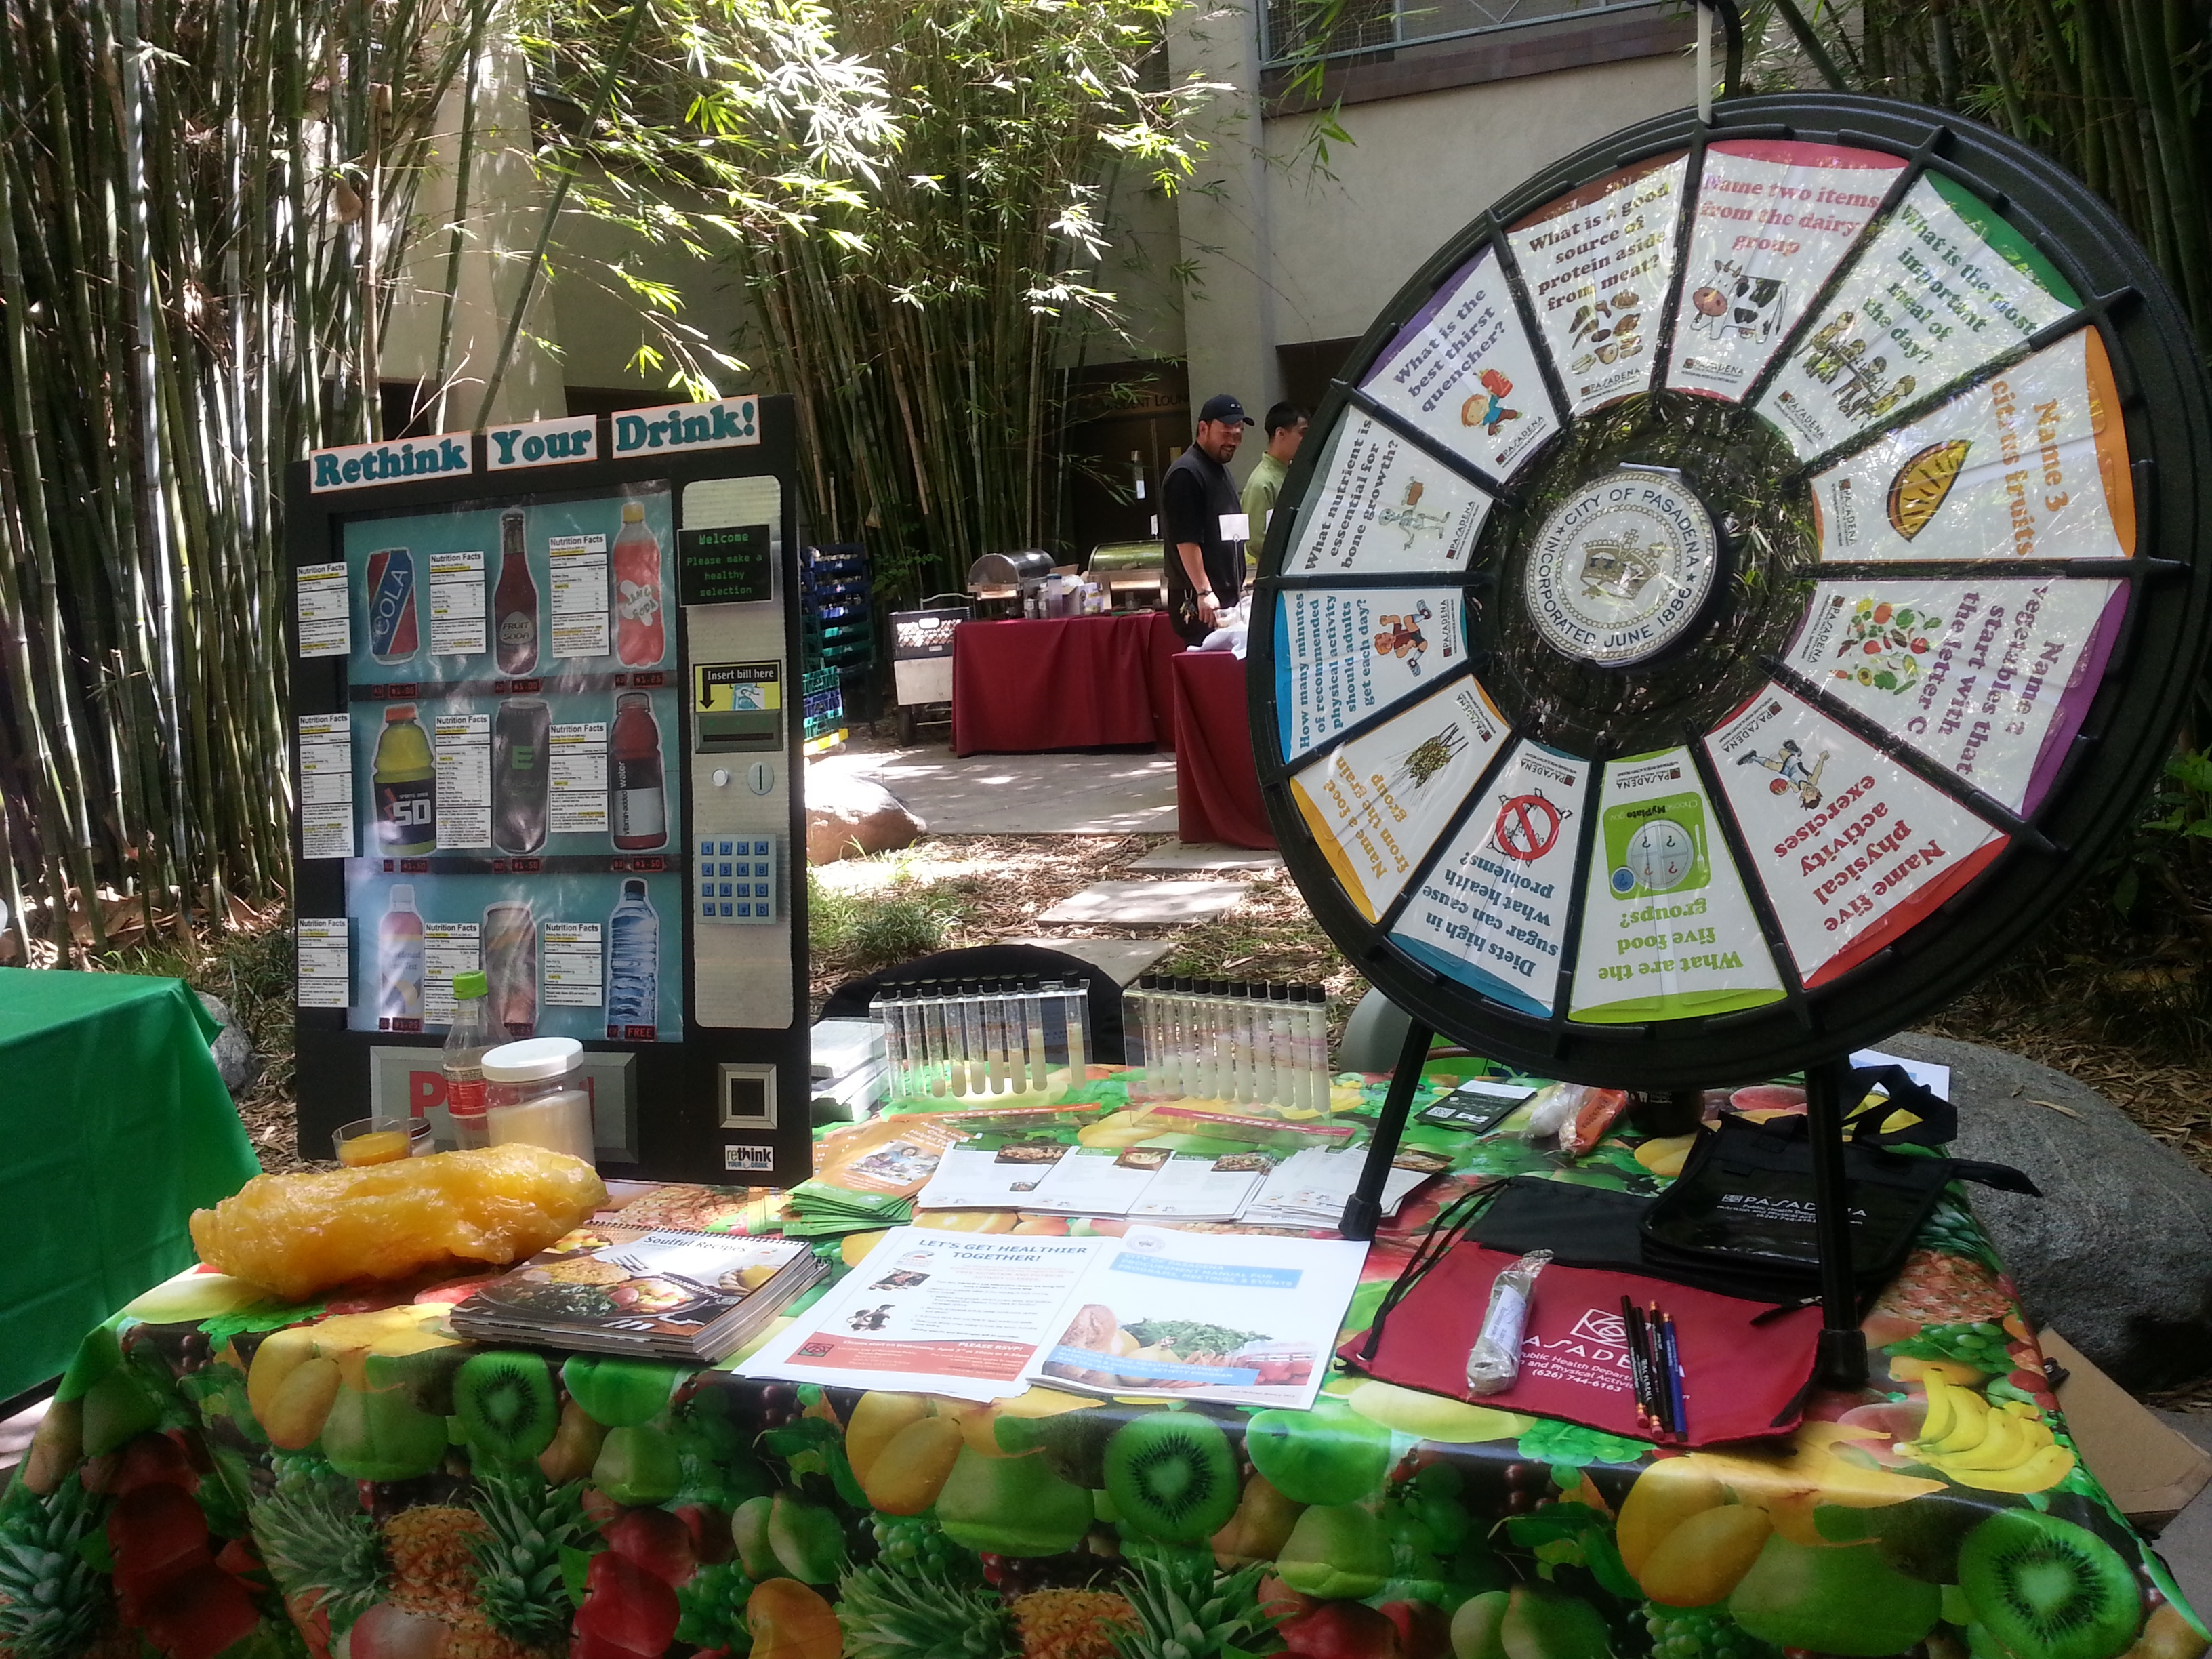 Rethink your drink and factoid wheel display table